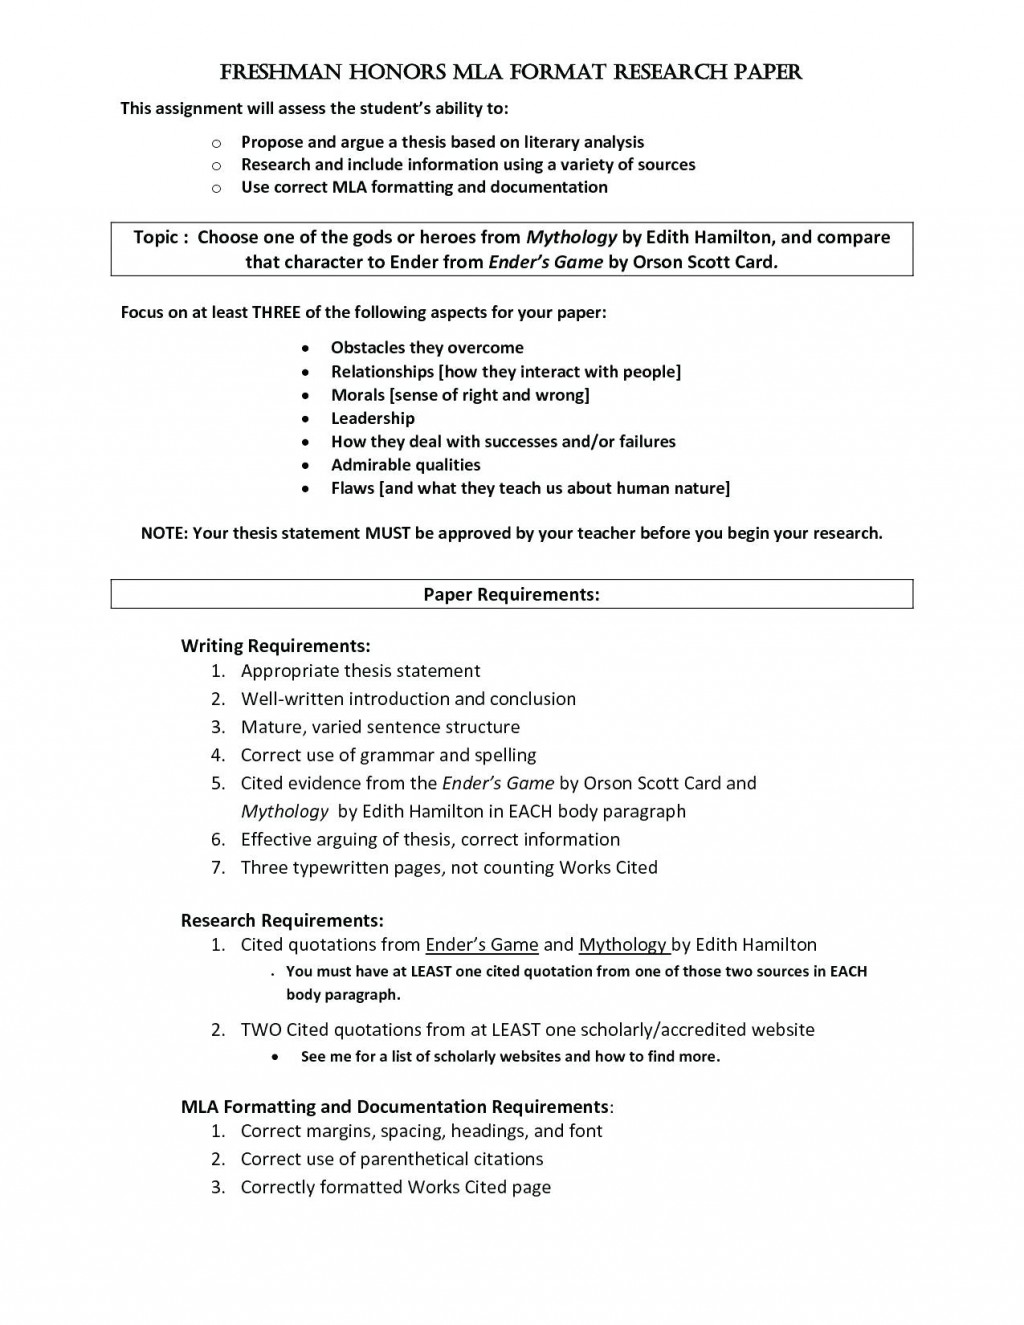 018 Work Cited Format Template Luxury Unique How To Quote In Wallpaper Site Mla Resume Wallpa Research Awesome Paper Outline Example Large